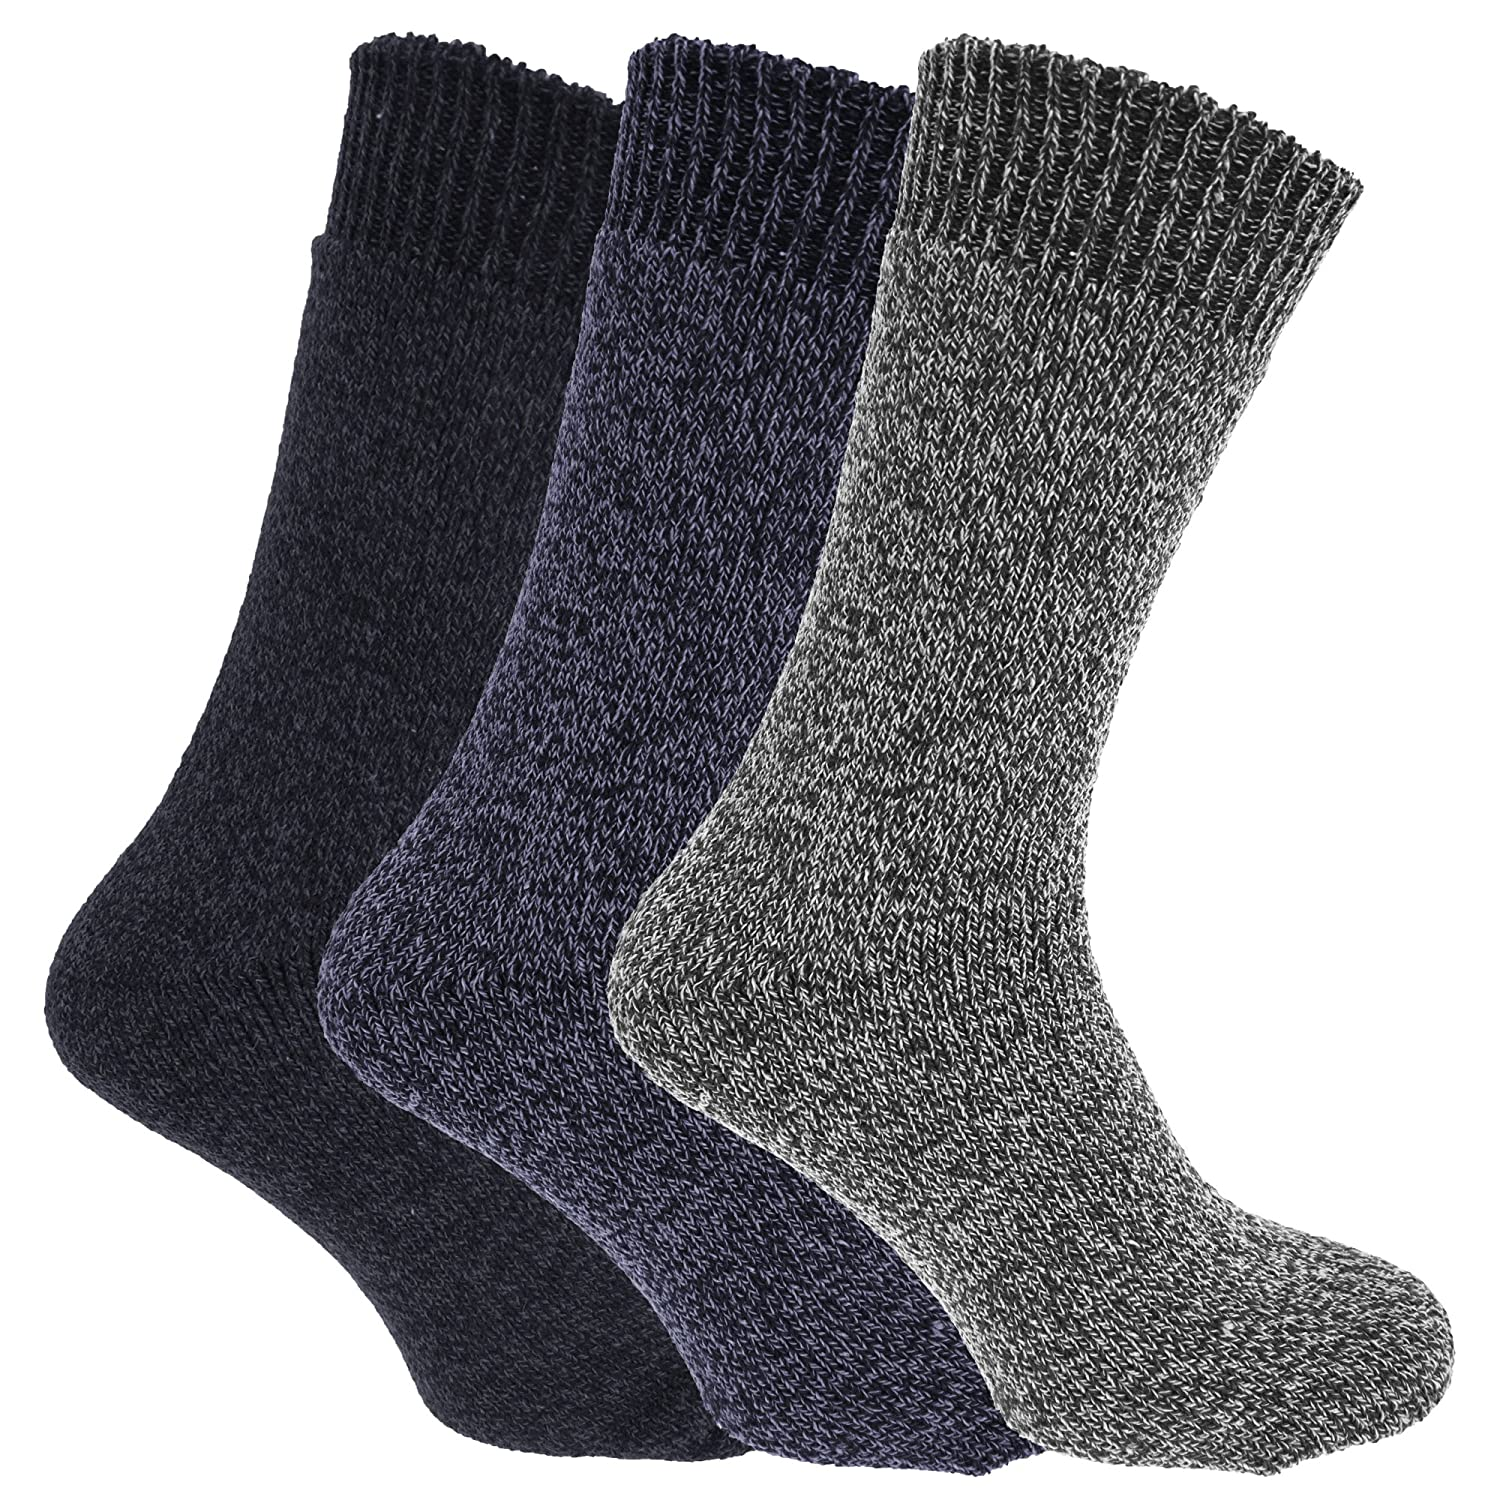 Pack Of 3 Mens Wool Blend Fully Cushioned Thermal Boot Socks